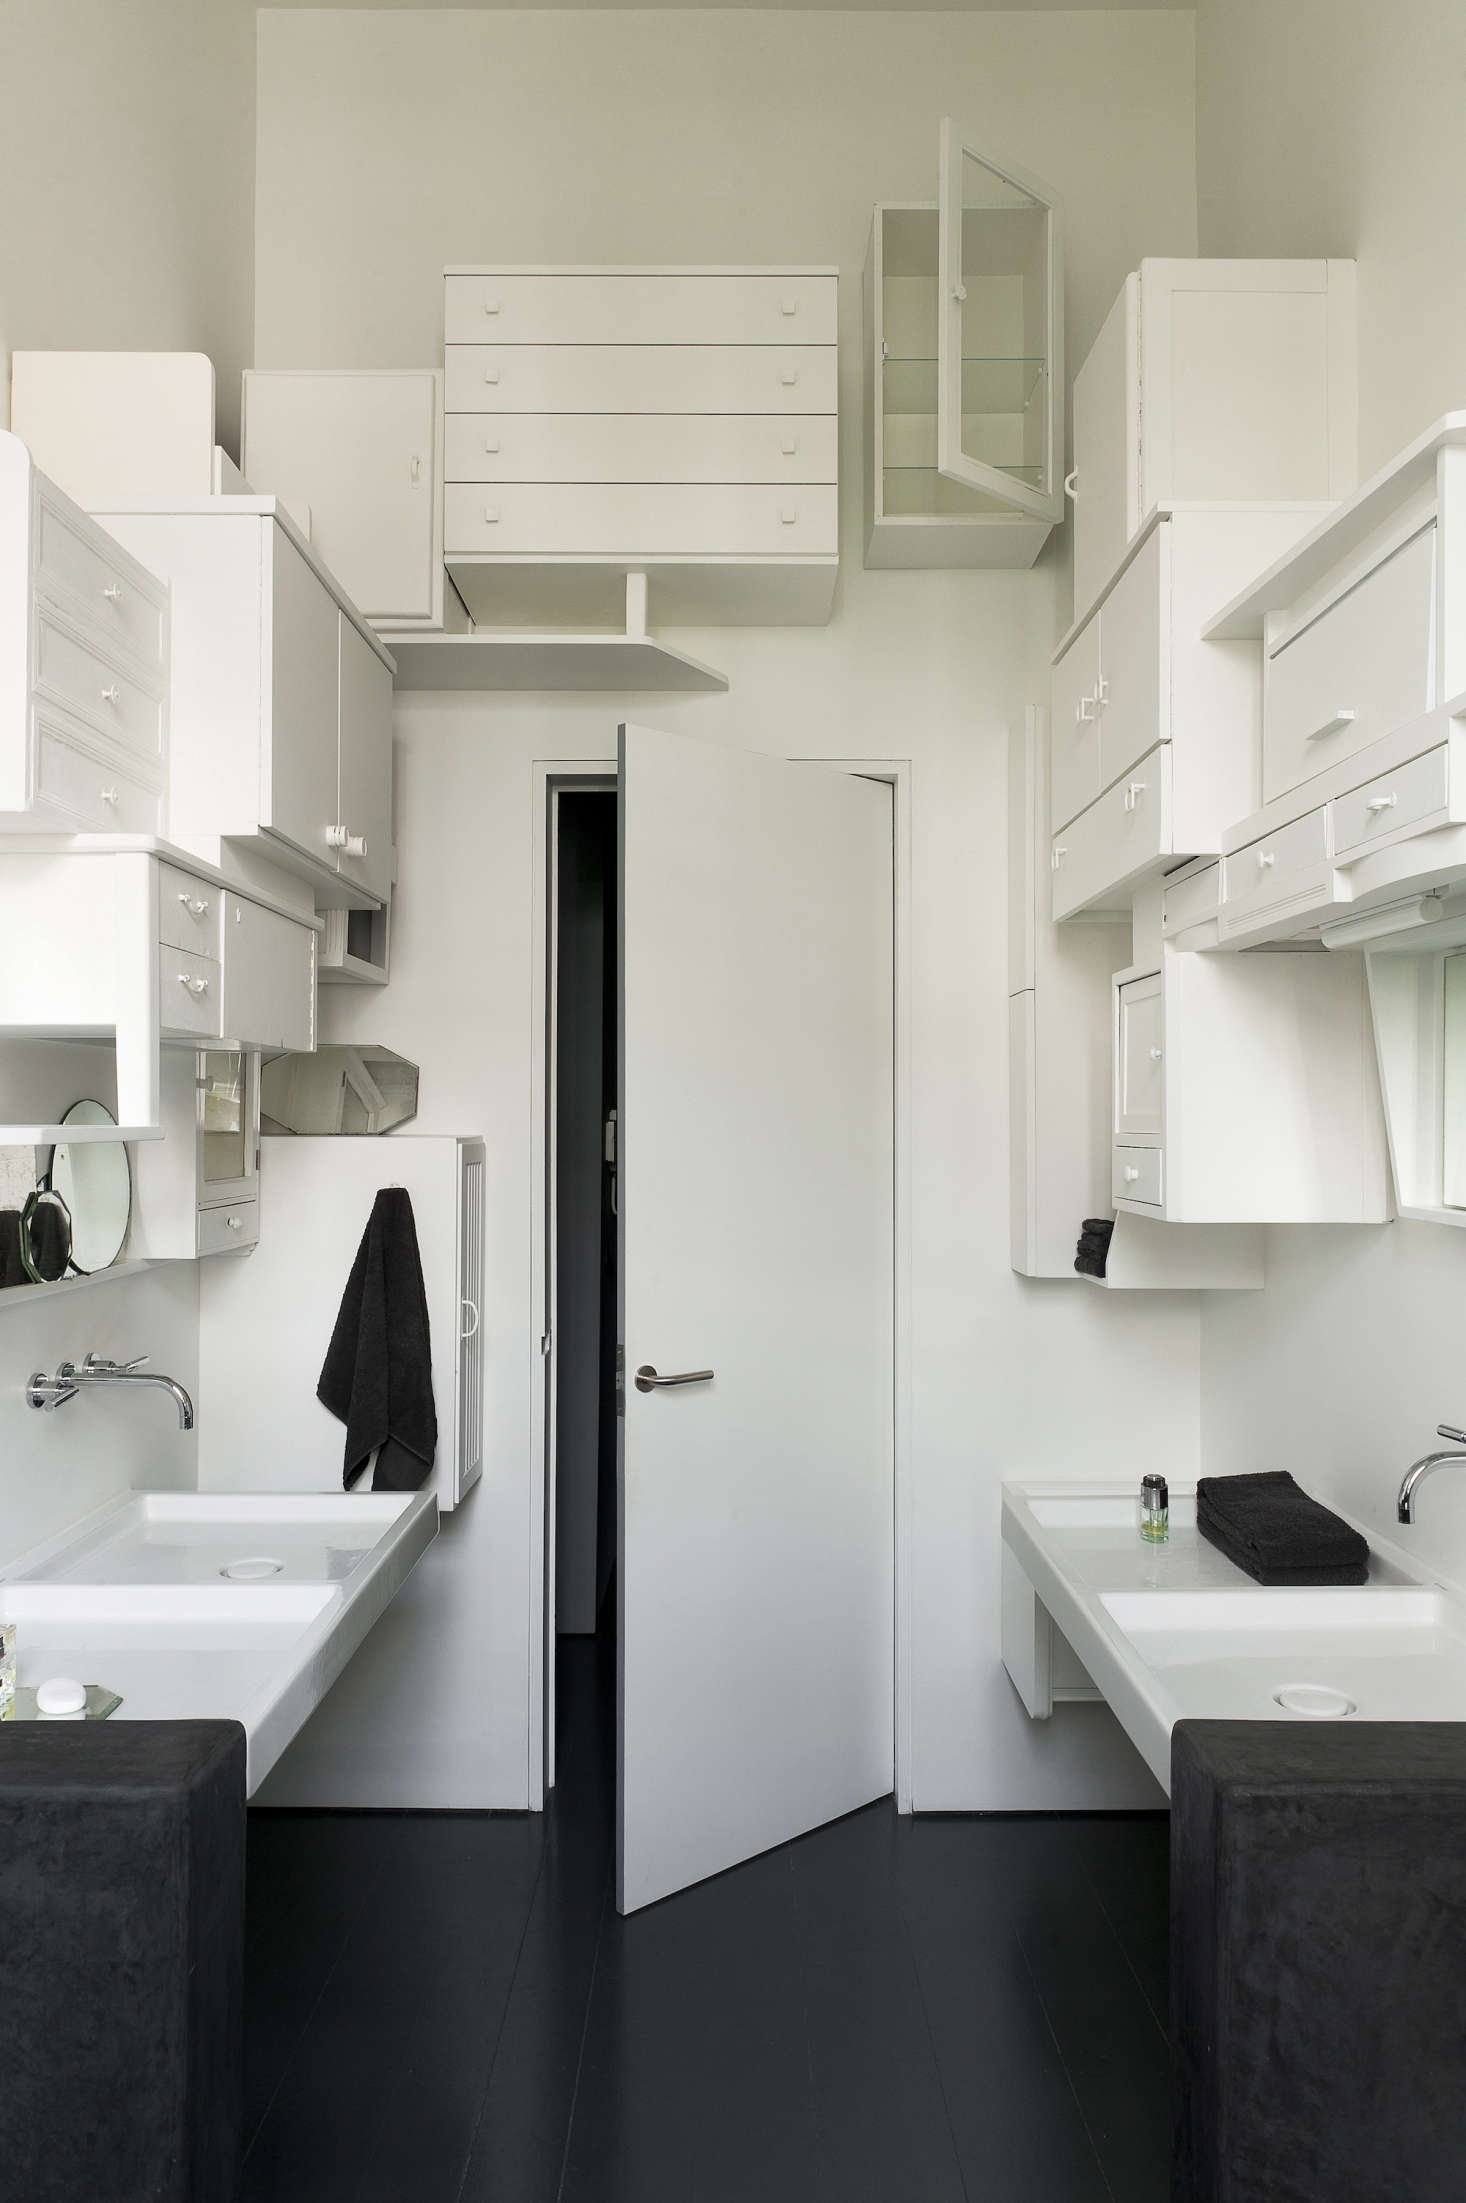 The bathroom features walls of white painted cabinets.